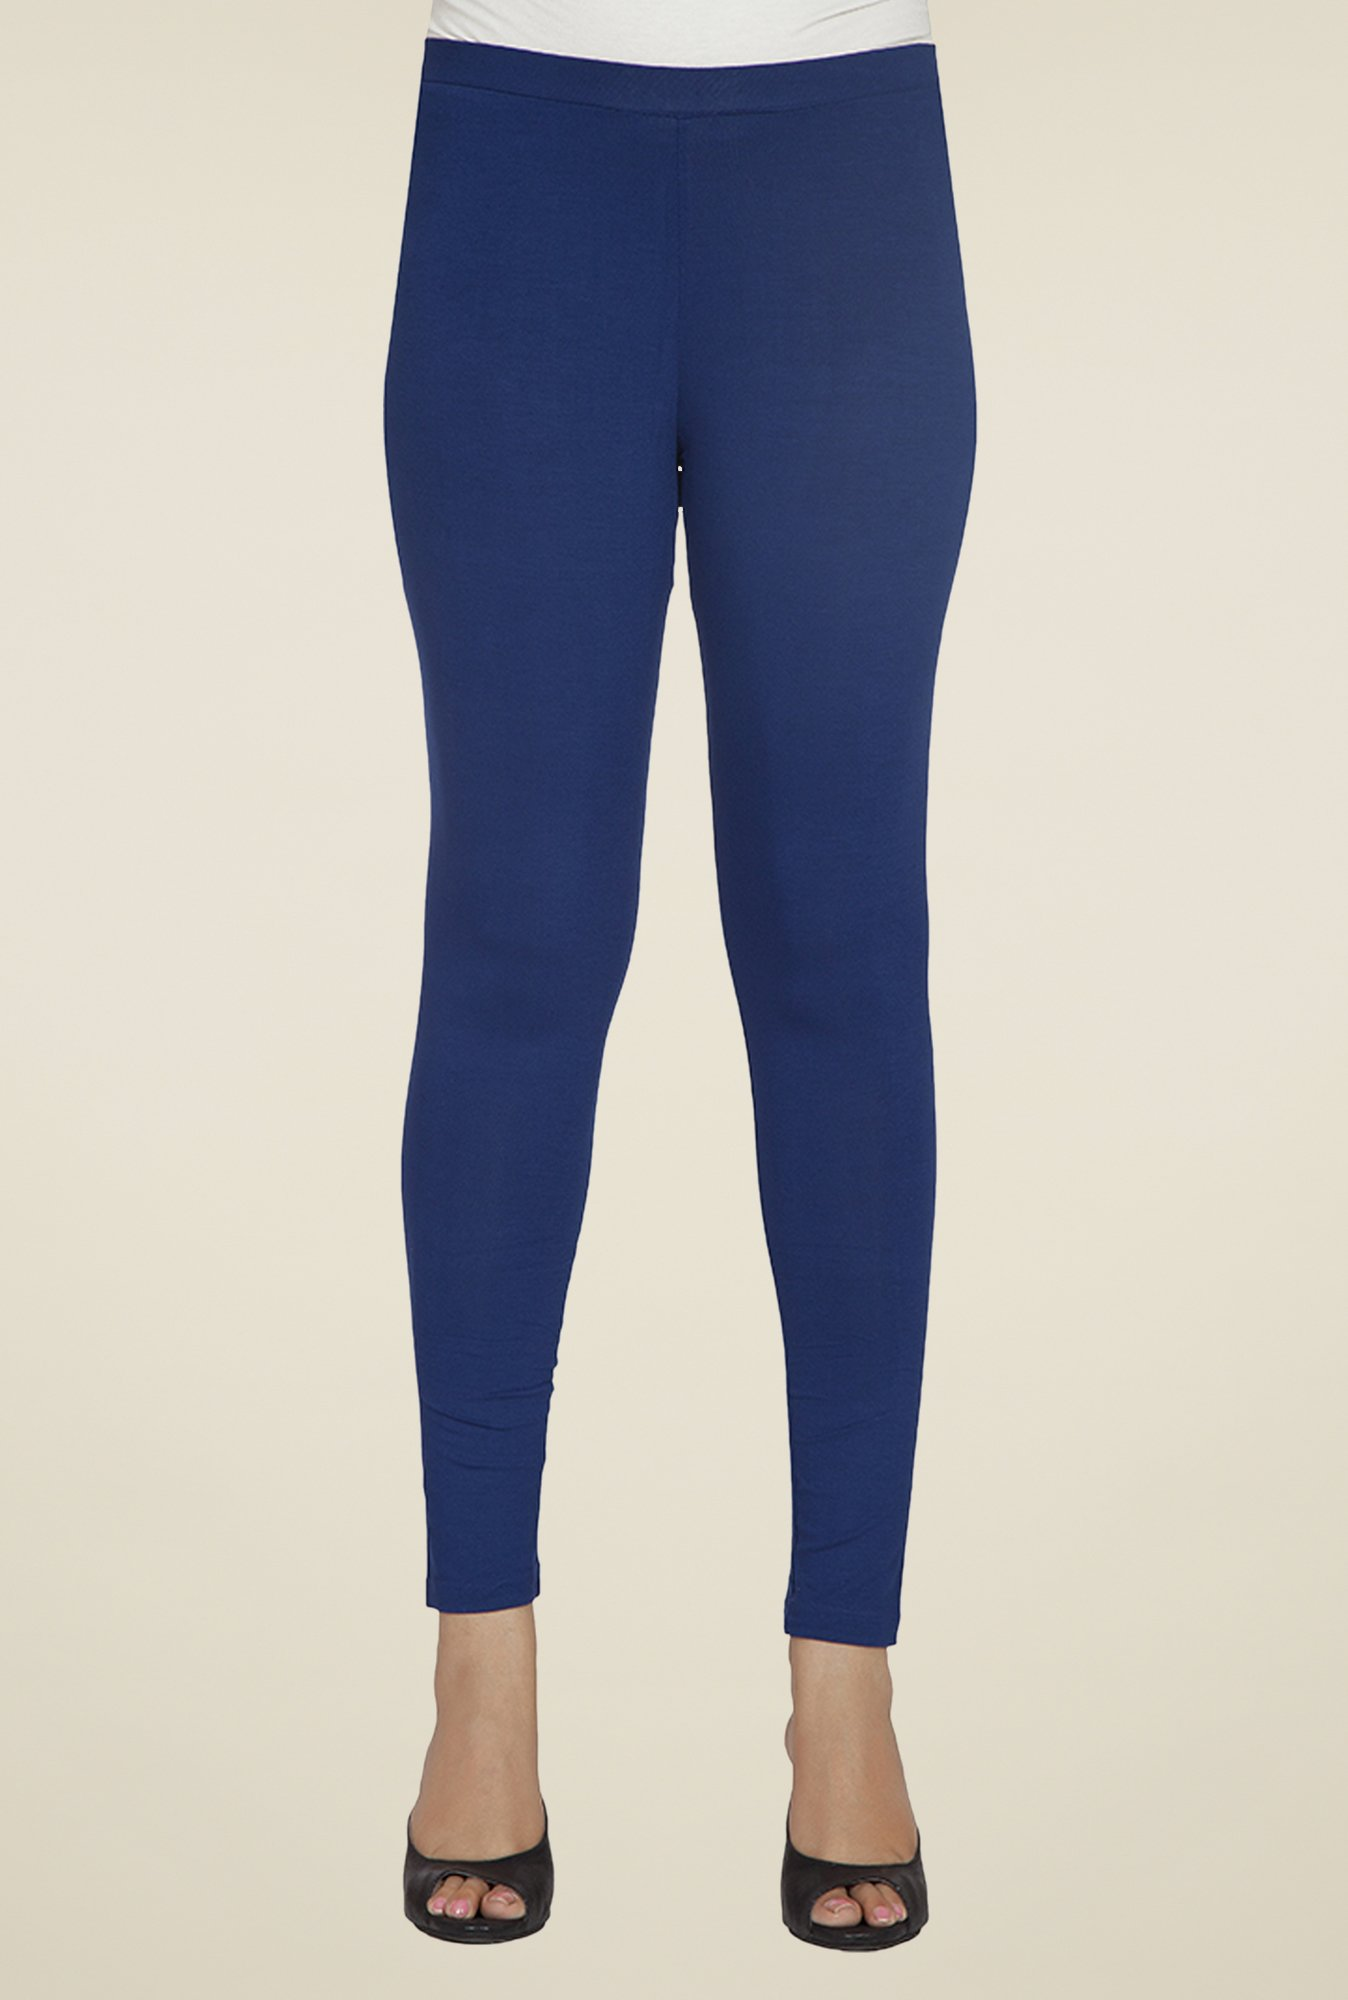 Desi Belle Navy Solid Leggings